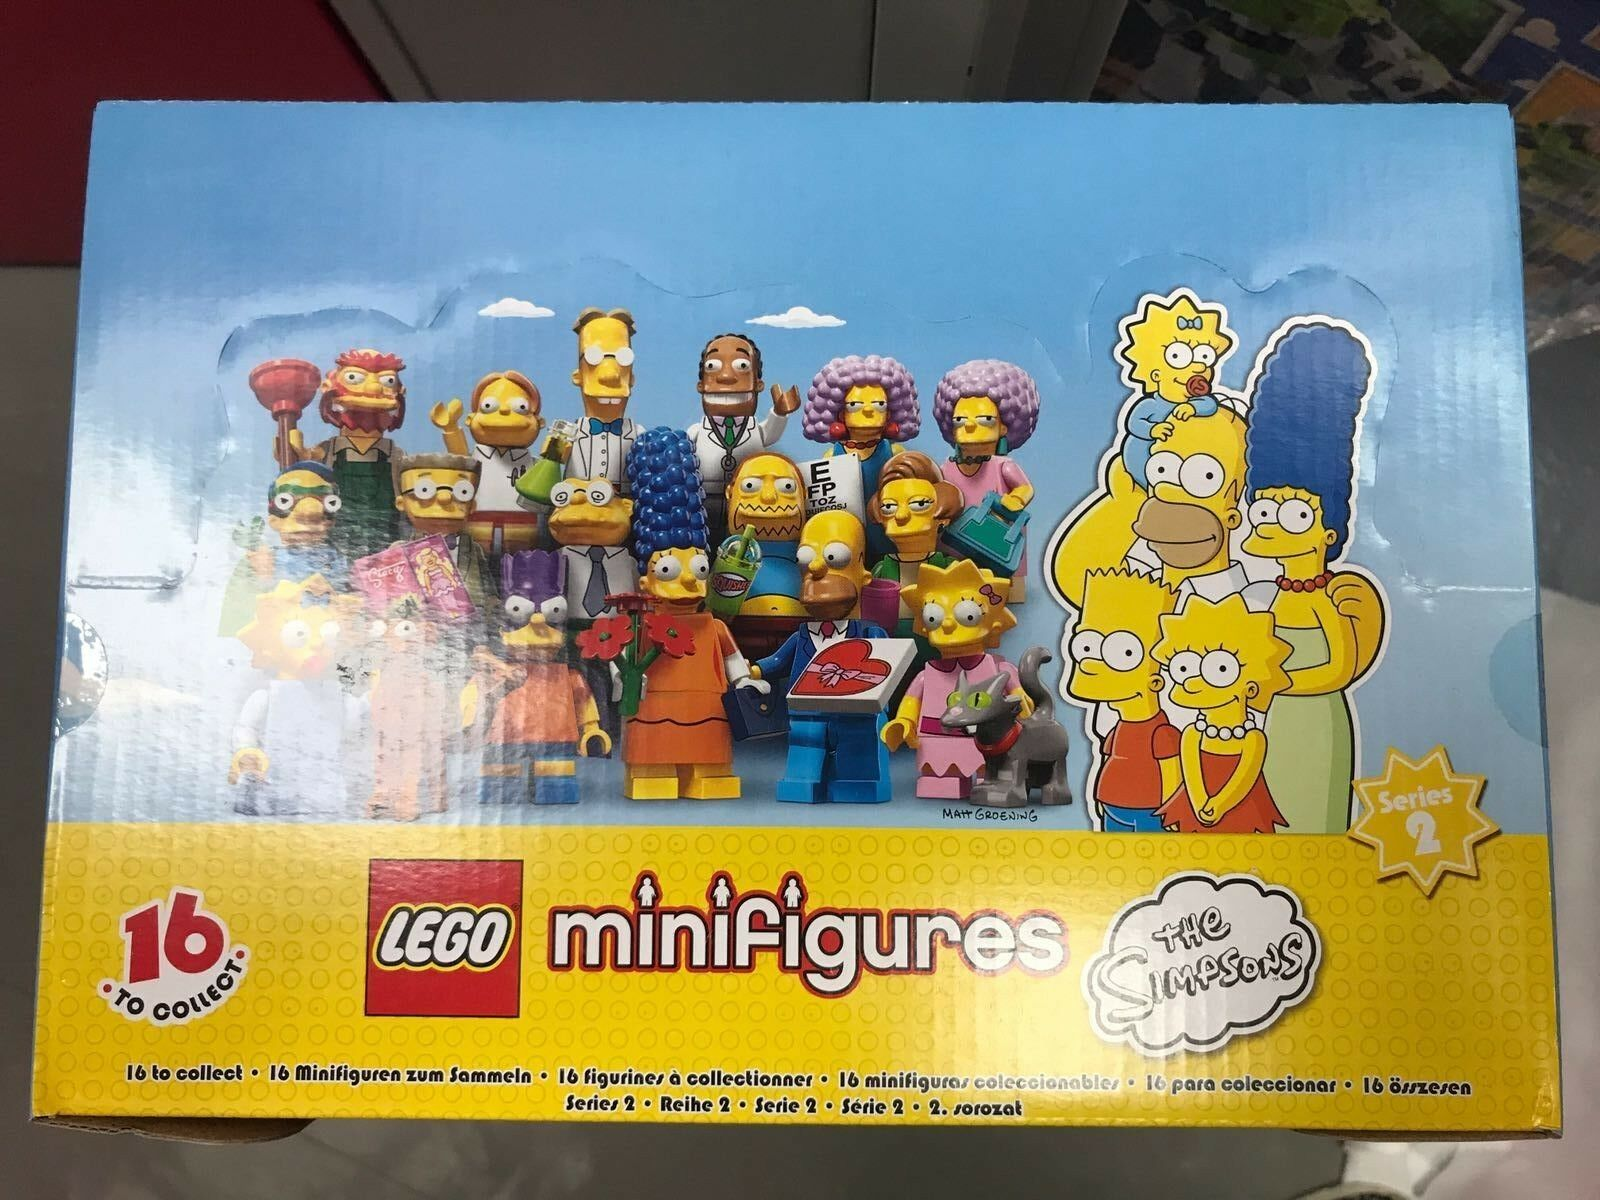 NEW SEALED LEGO Box 71009 of 60 MINIFIGURES - The Simpsons Series 2